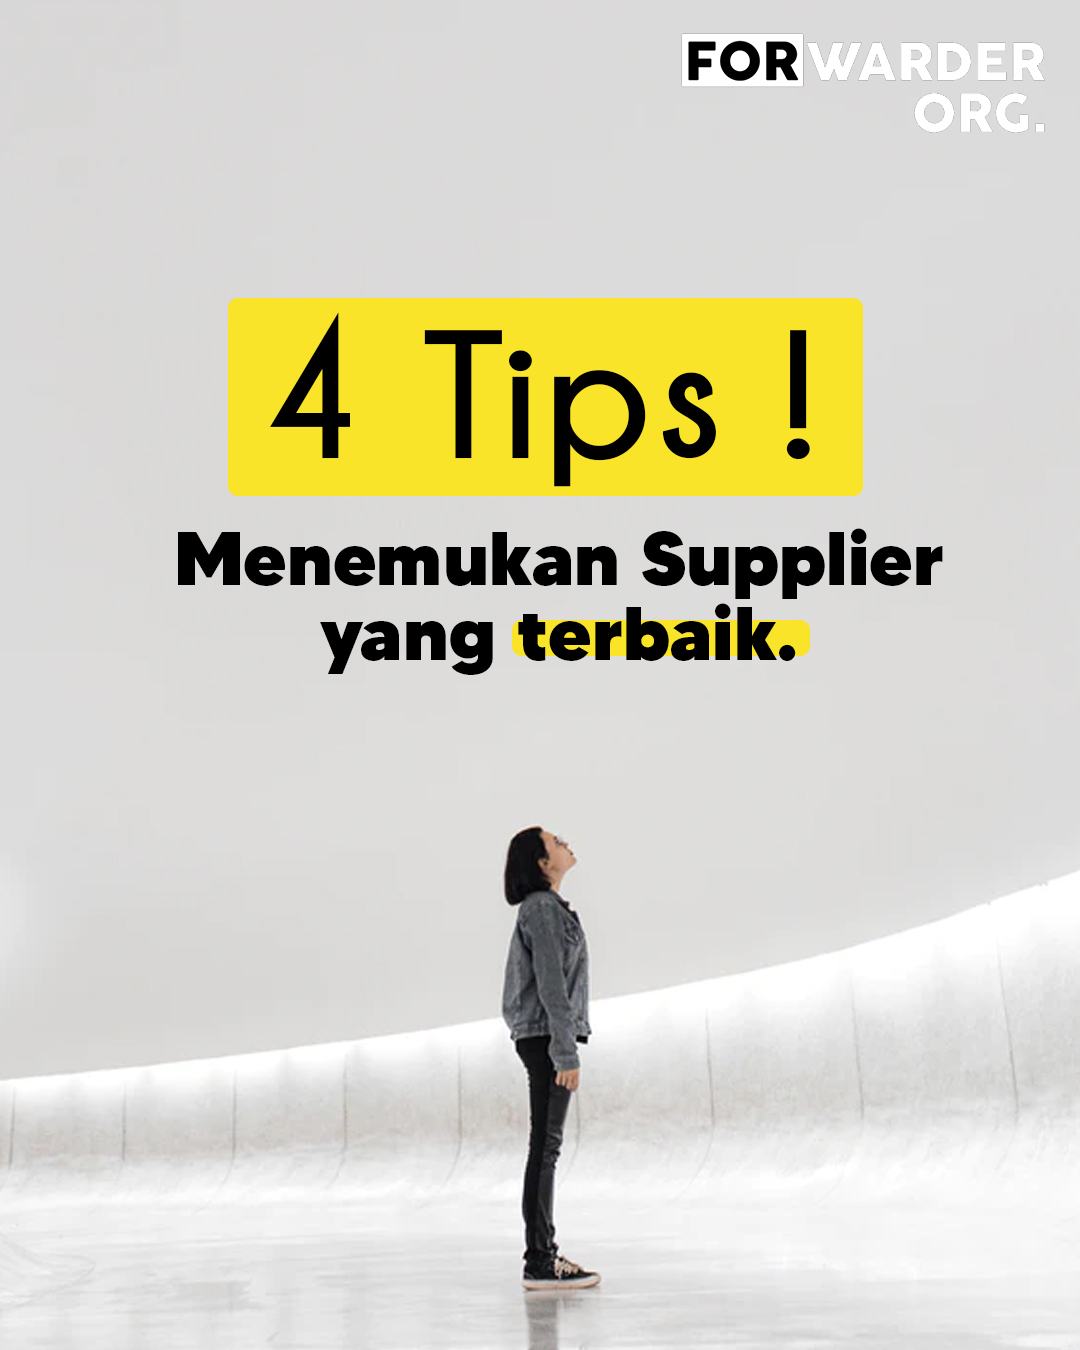 4 Tips Menemukan Supplier Terbaik di Marketplace | FORWARDER ORG